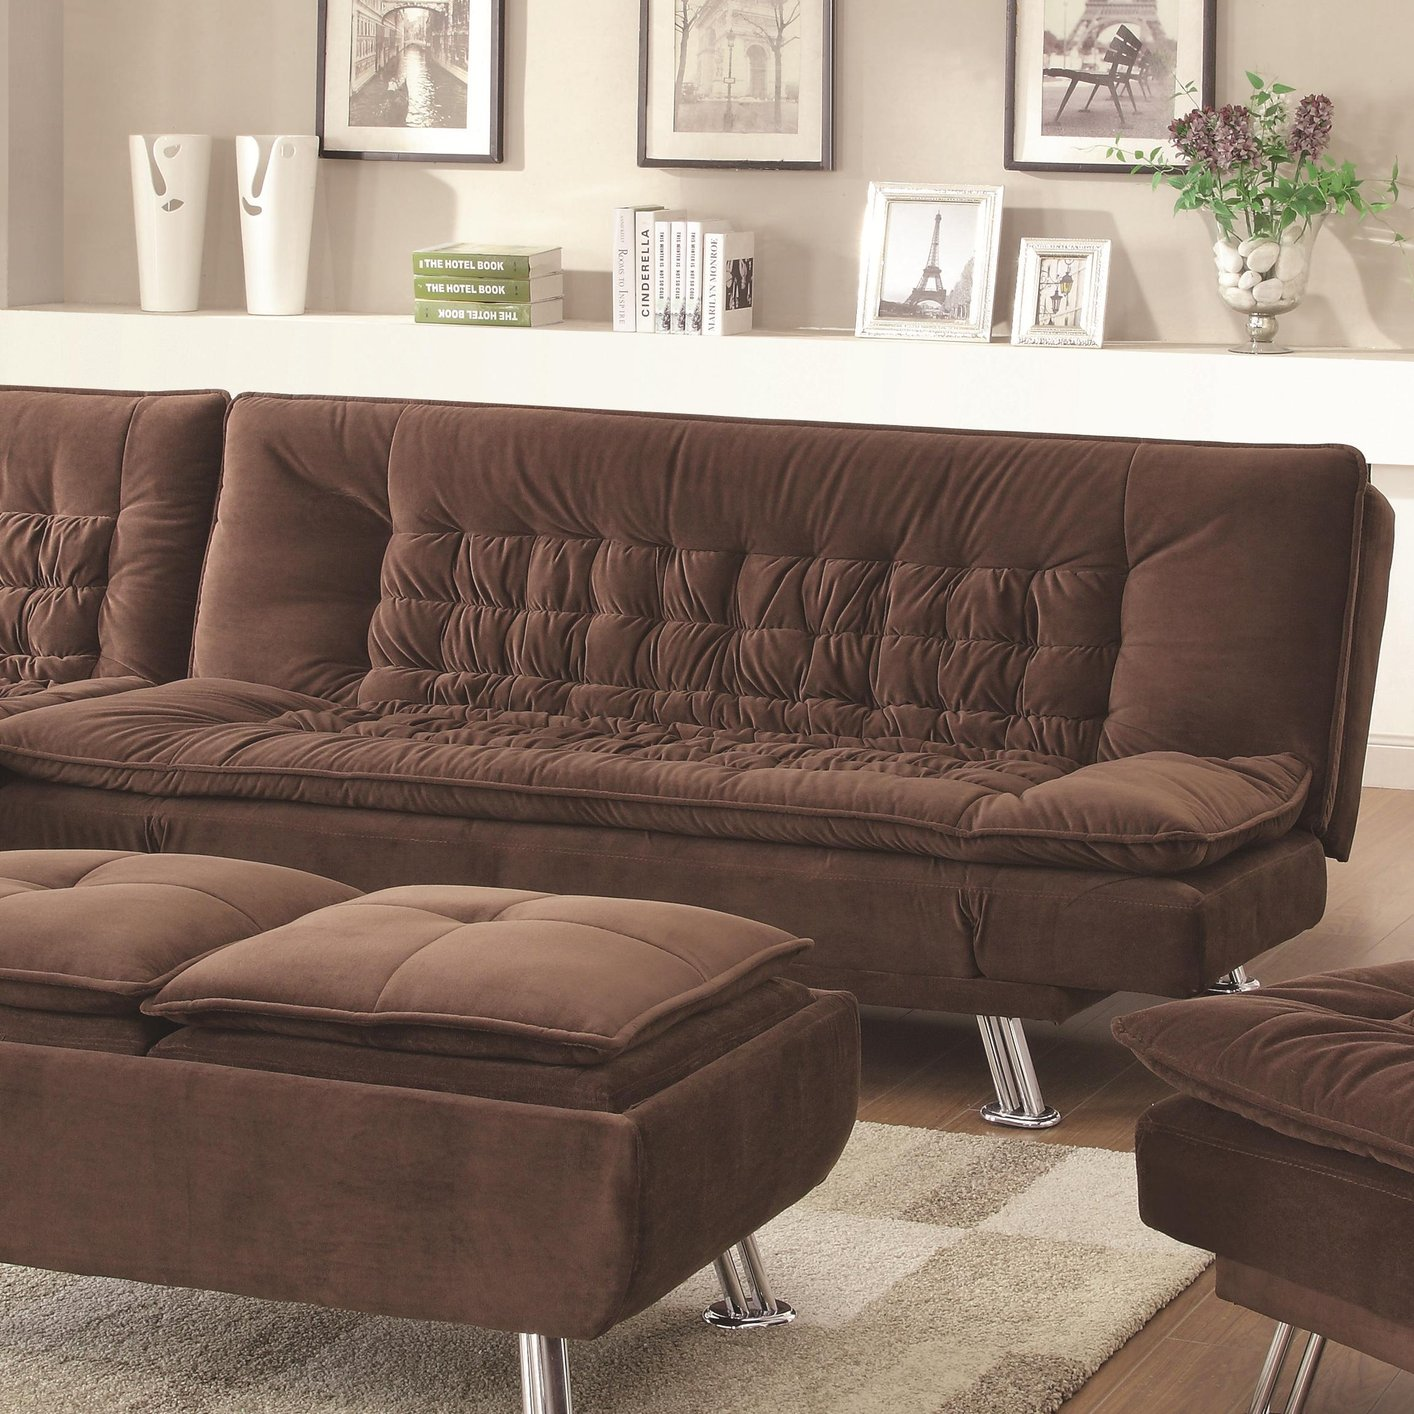 Coaster 300411 brown fabric sofa bed steal a sofa for Brown fabric couch